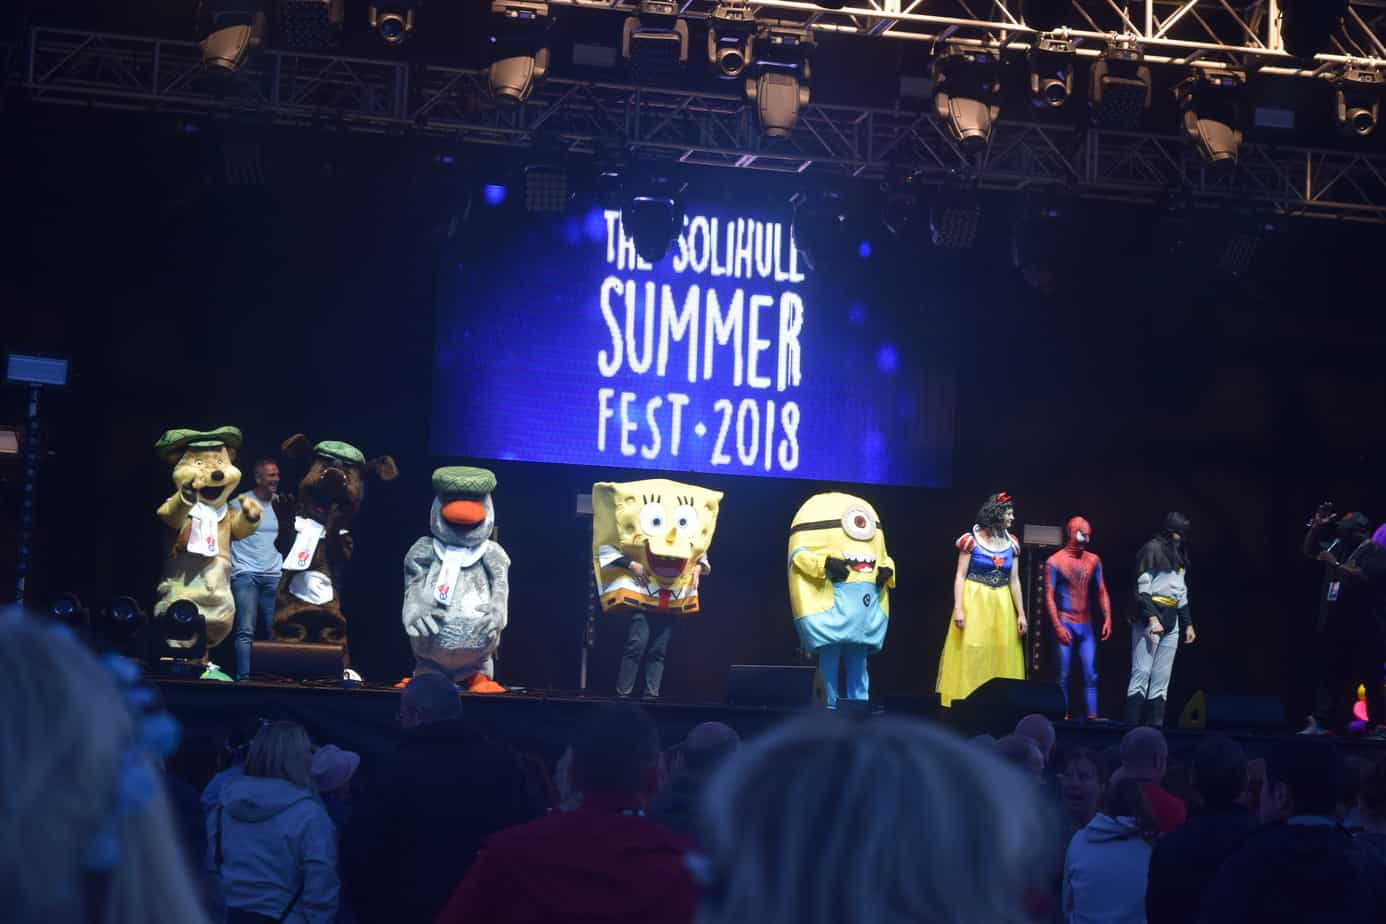 All the mascots on the stage at solihull summer fest